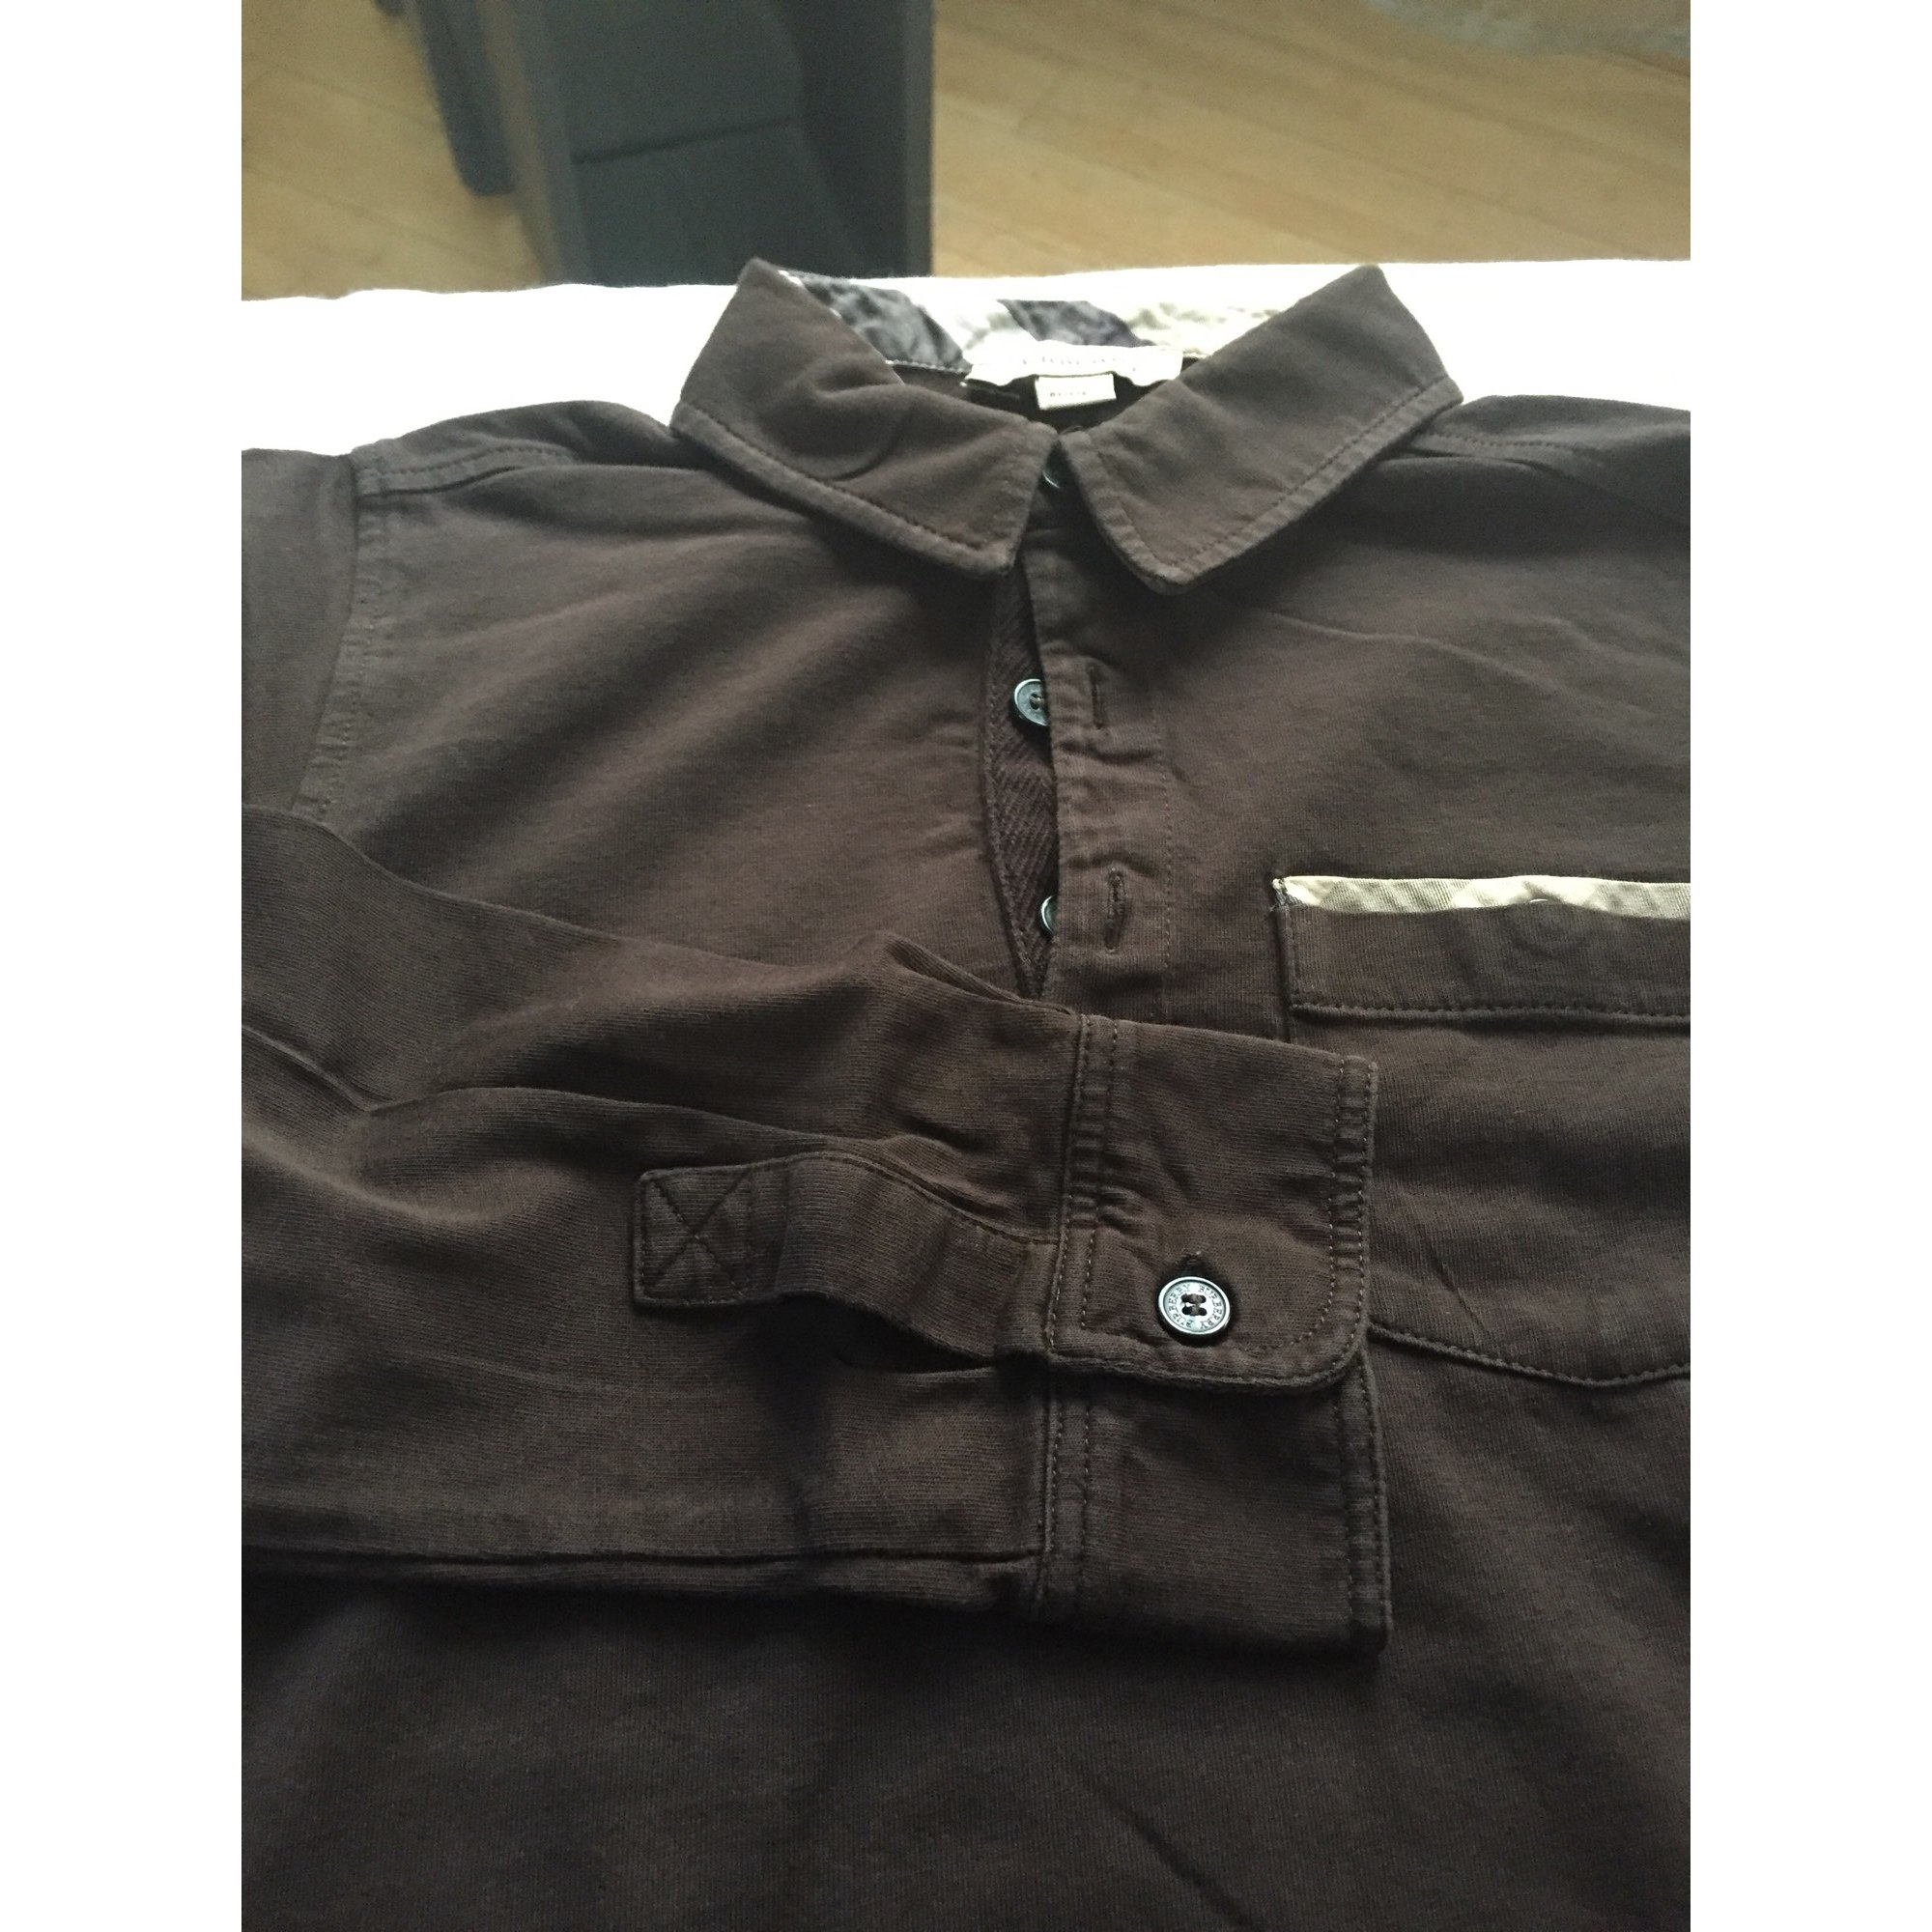 Polo BURBERRY Marron